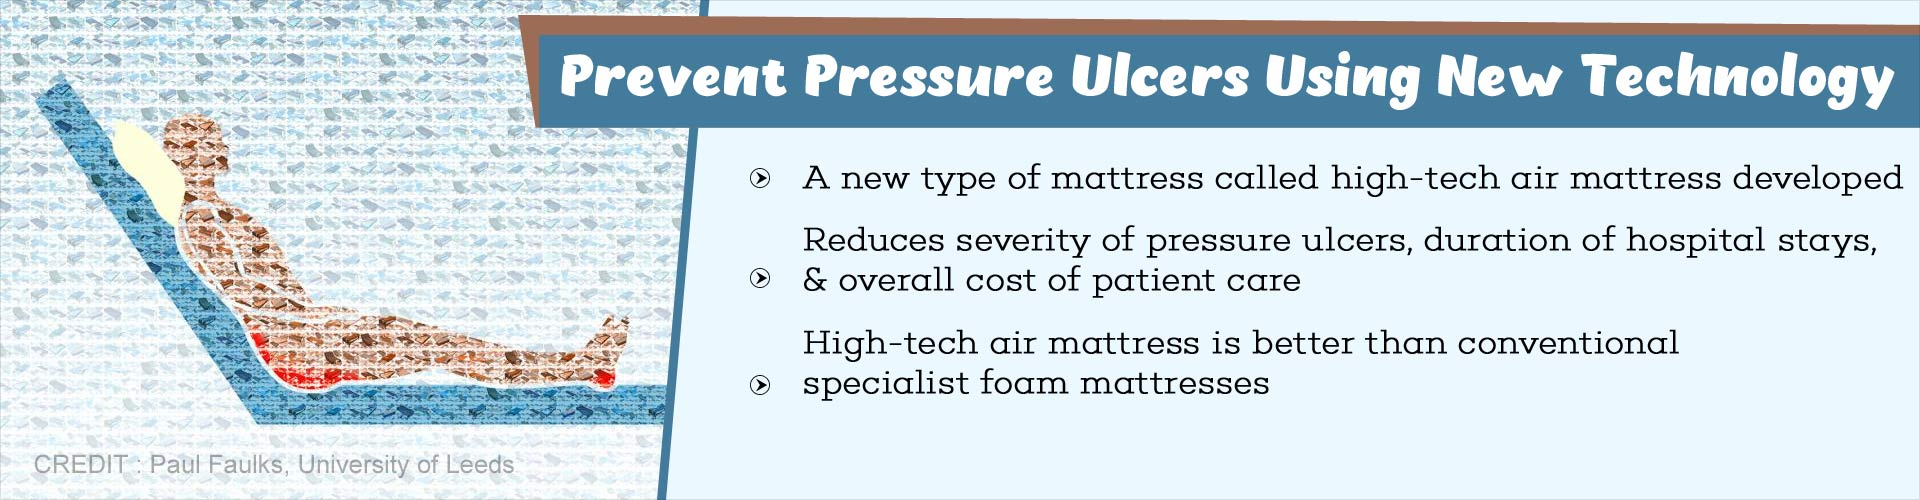 New Way to Treat Pressure Ulcers Effectively